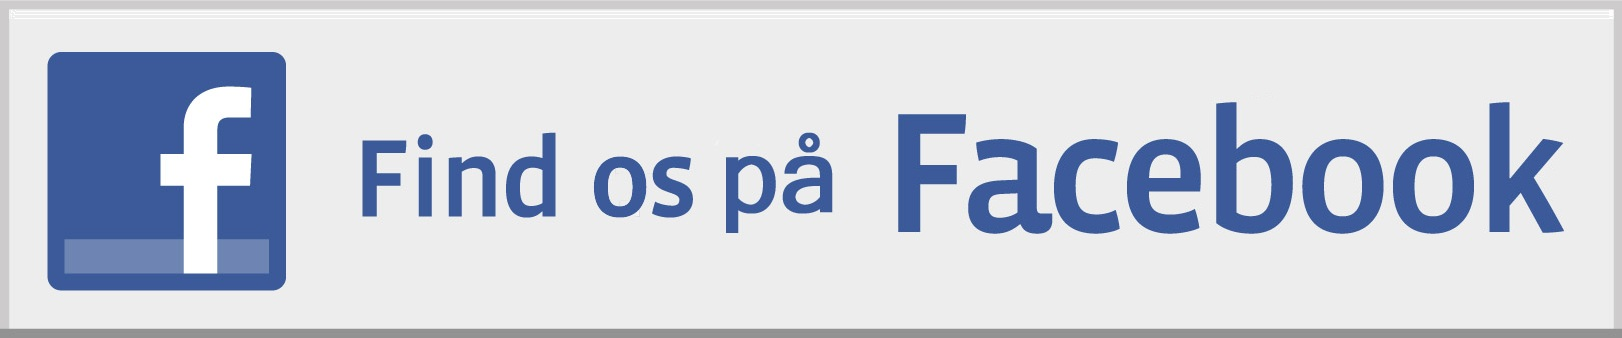 find os paa facebook 1